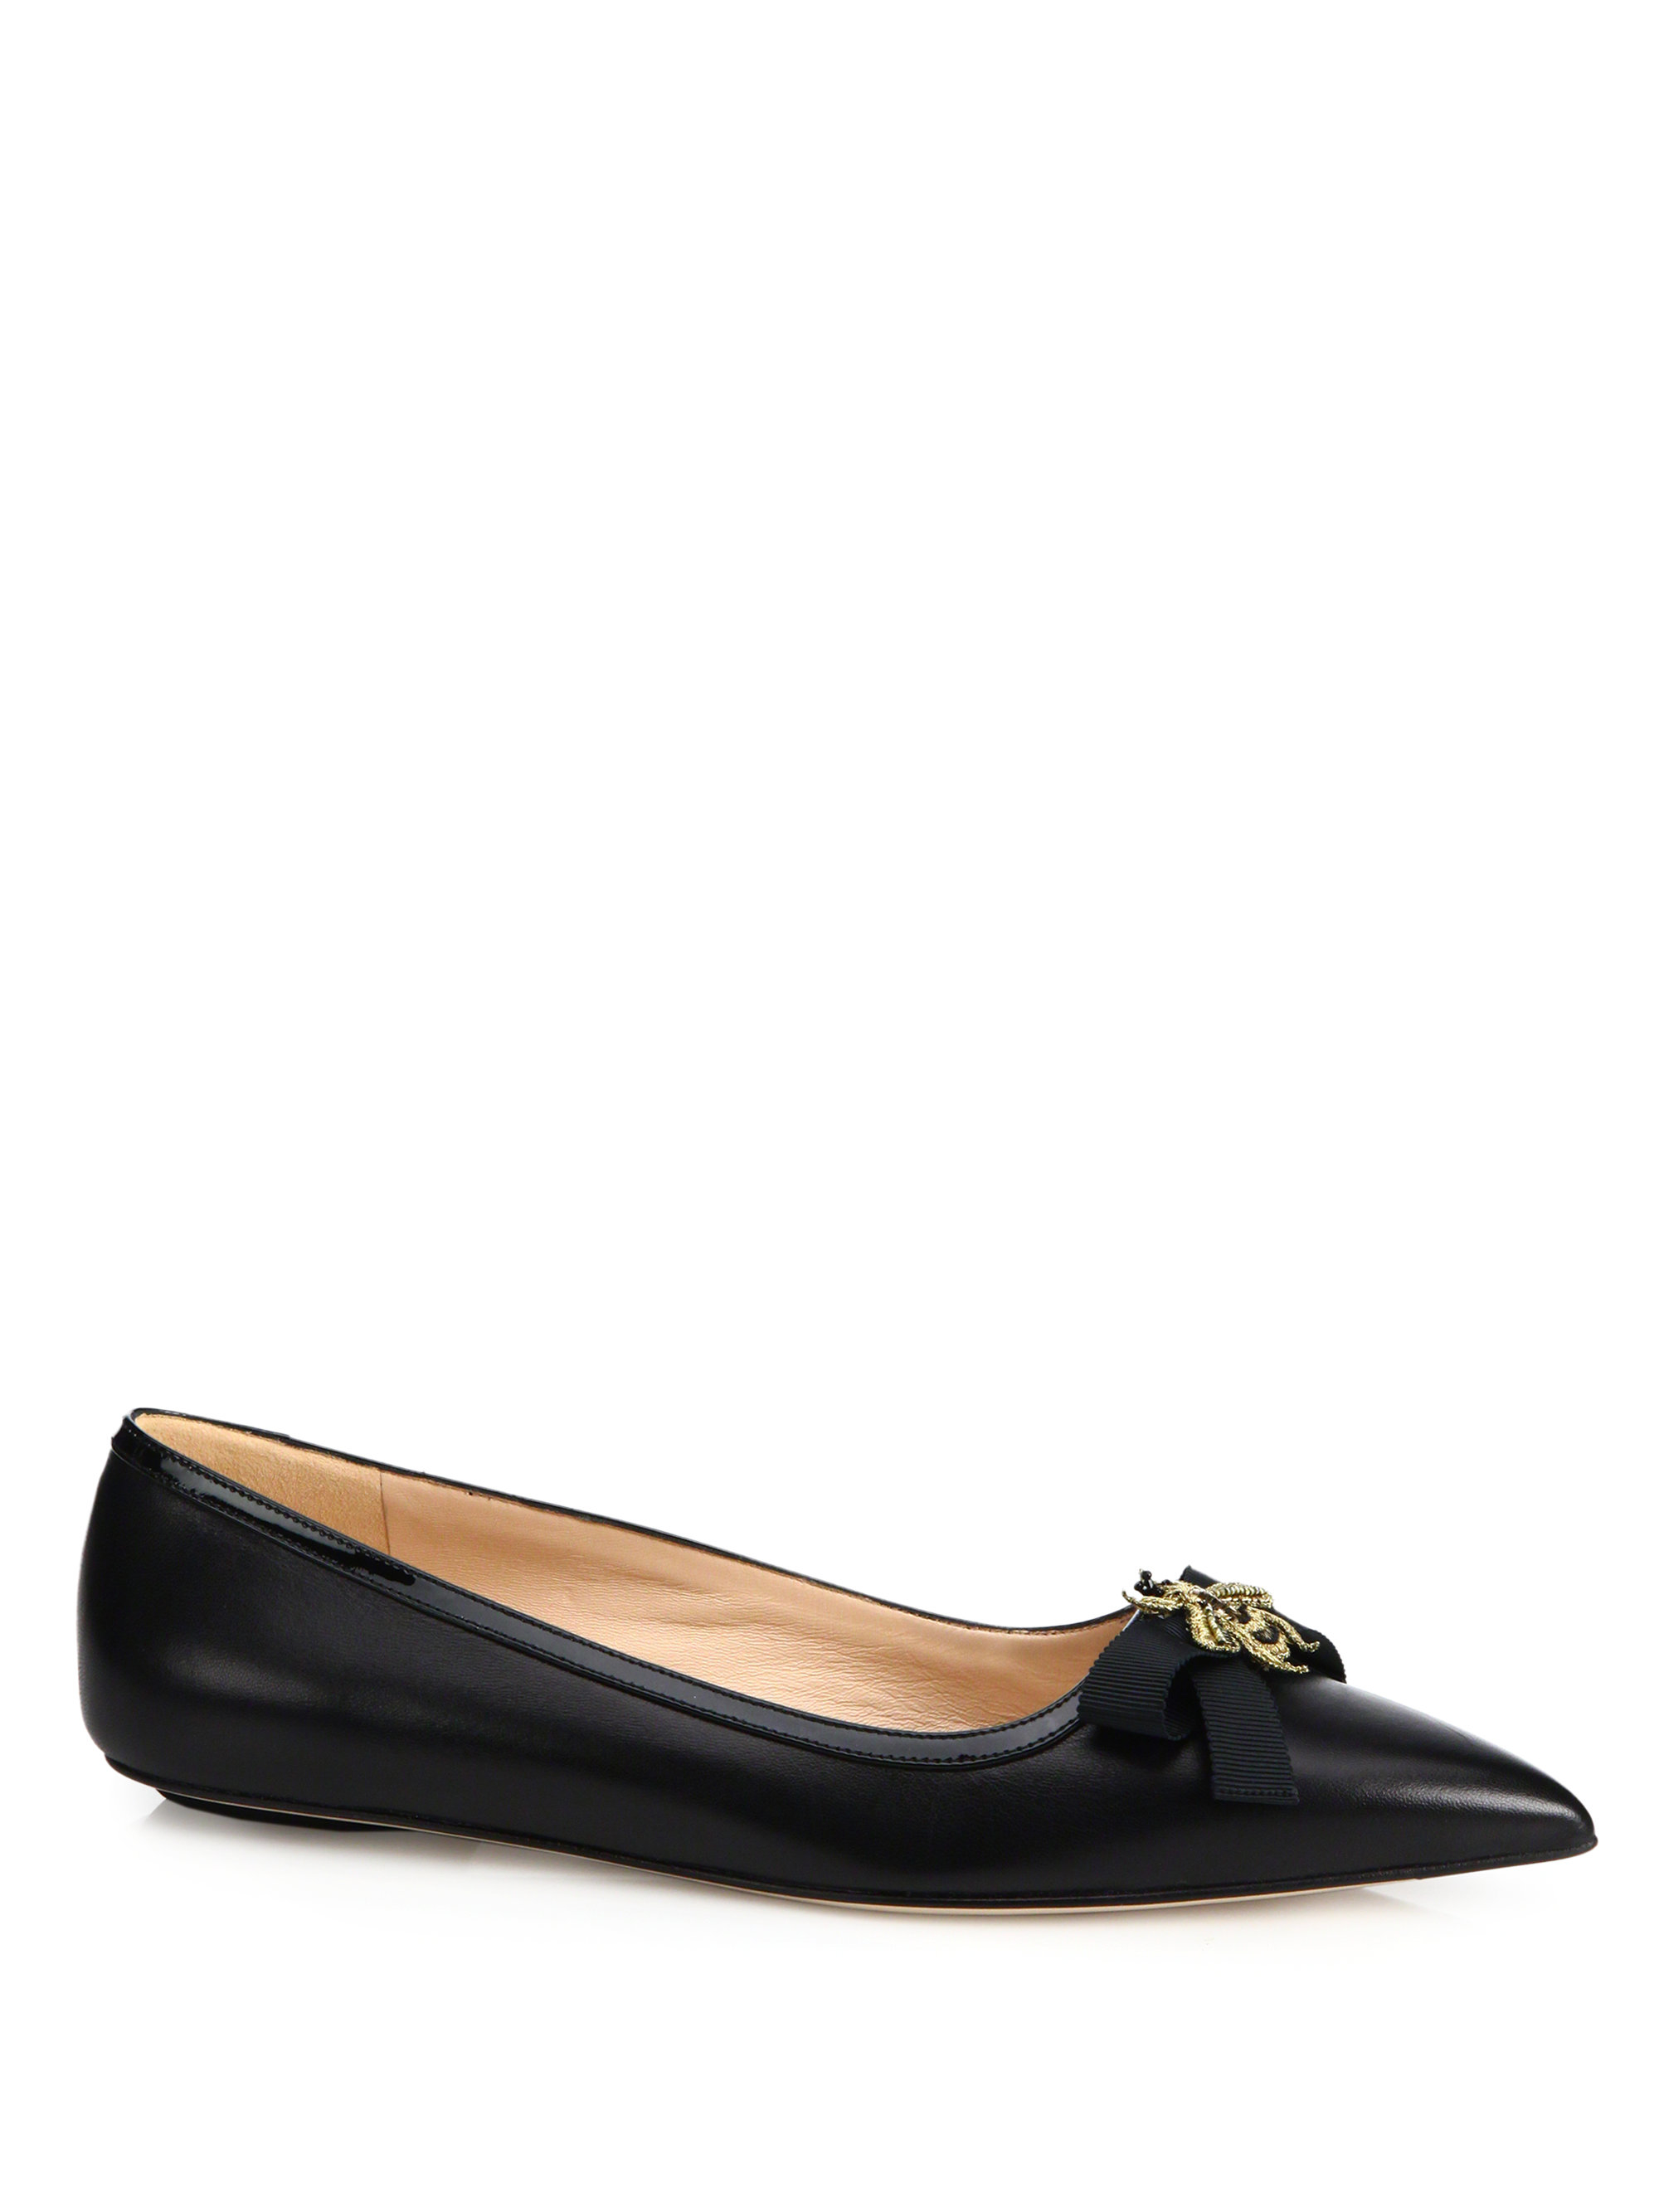 Lyst - Gucci Moody Bee Leather Ballet Flats in Black 6483a26cc